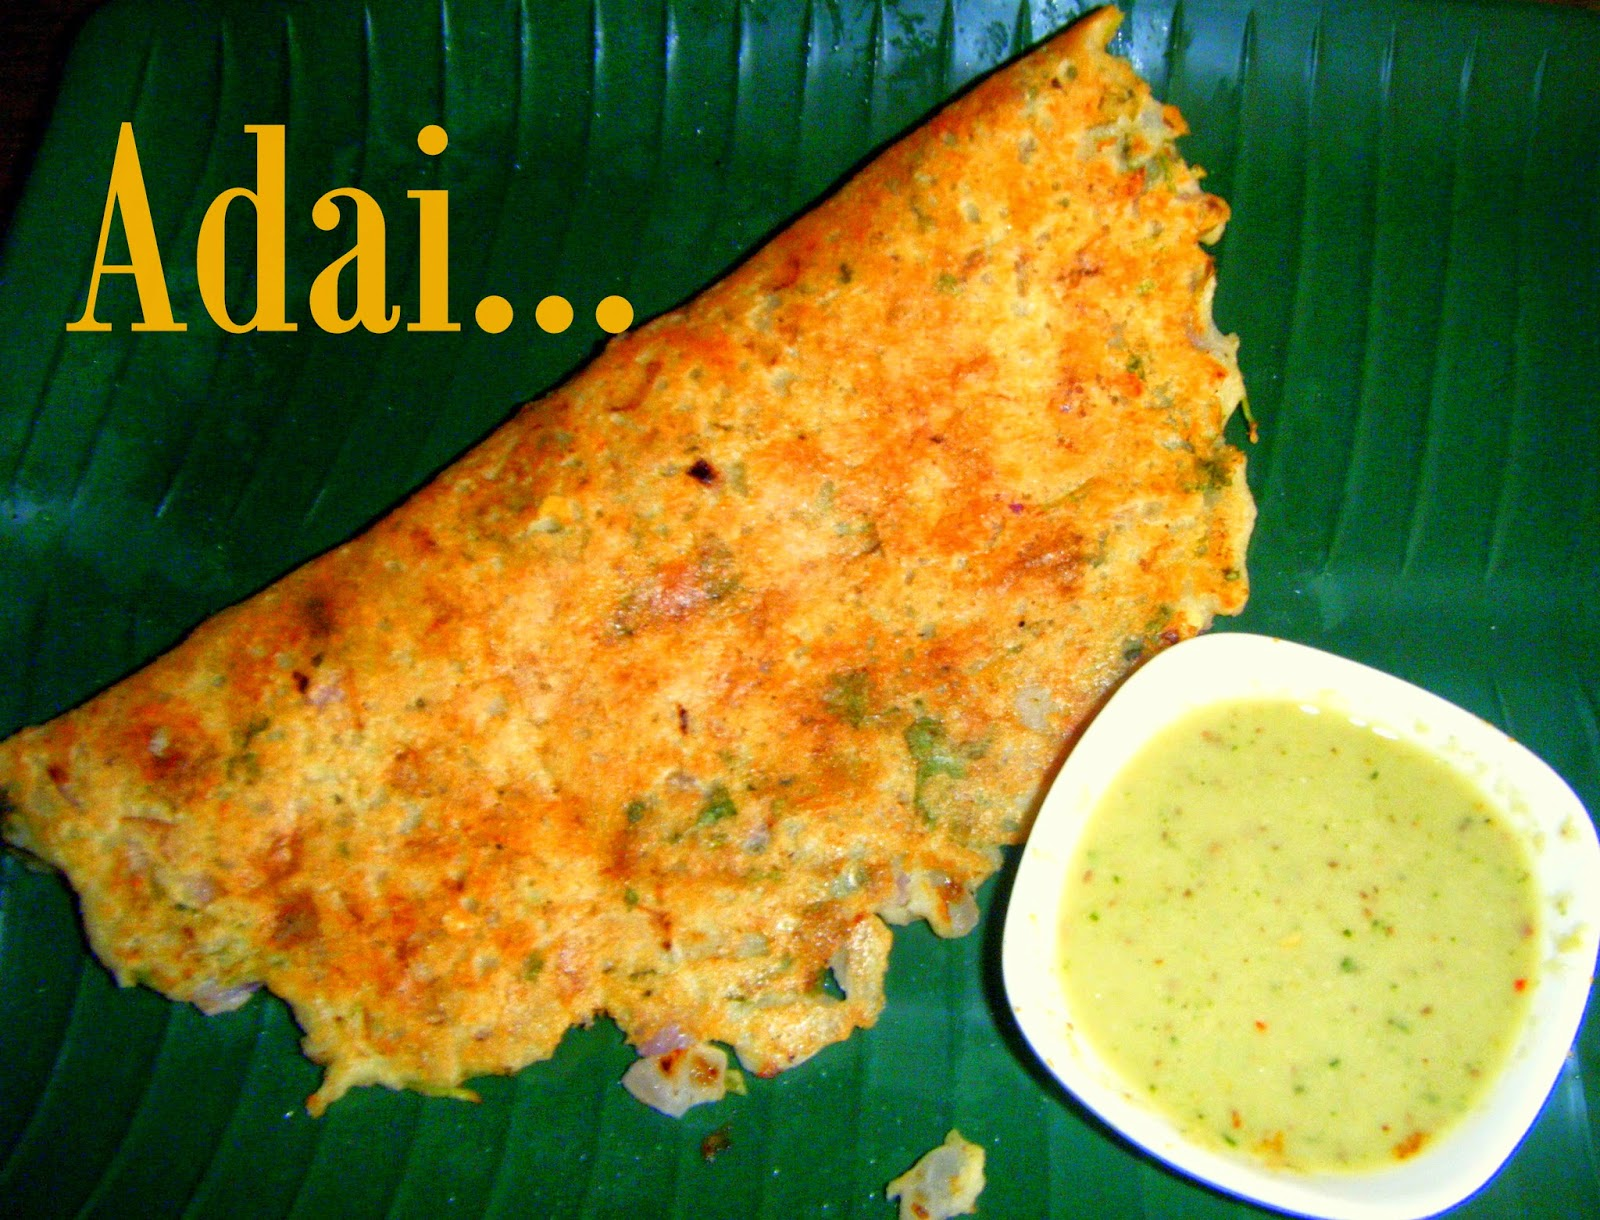 Deeps kitchen adai recipe south indian recipe made from dals lentil and rice batter along with some indian spices since it is made with varieties of dal it is protein rich and forumfinder Image collections